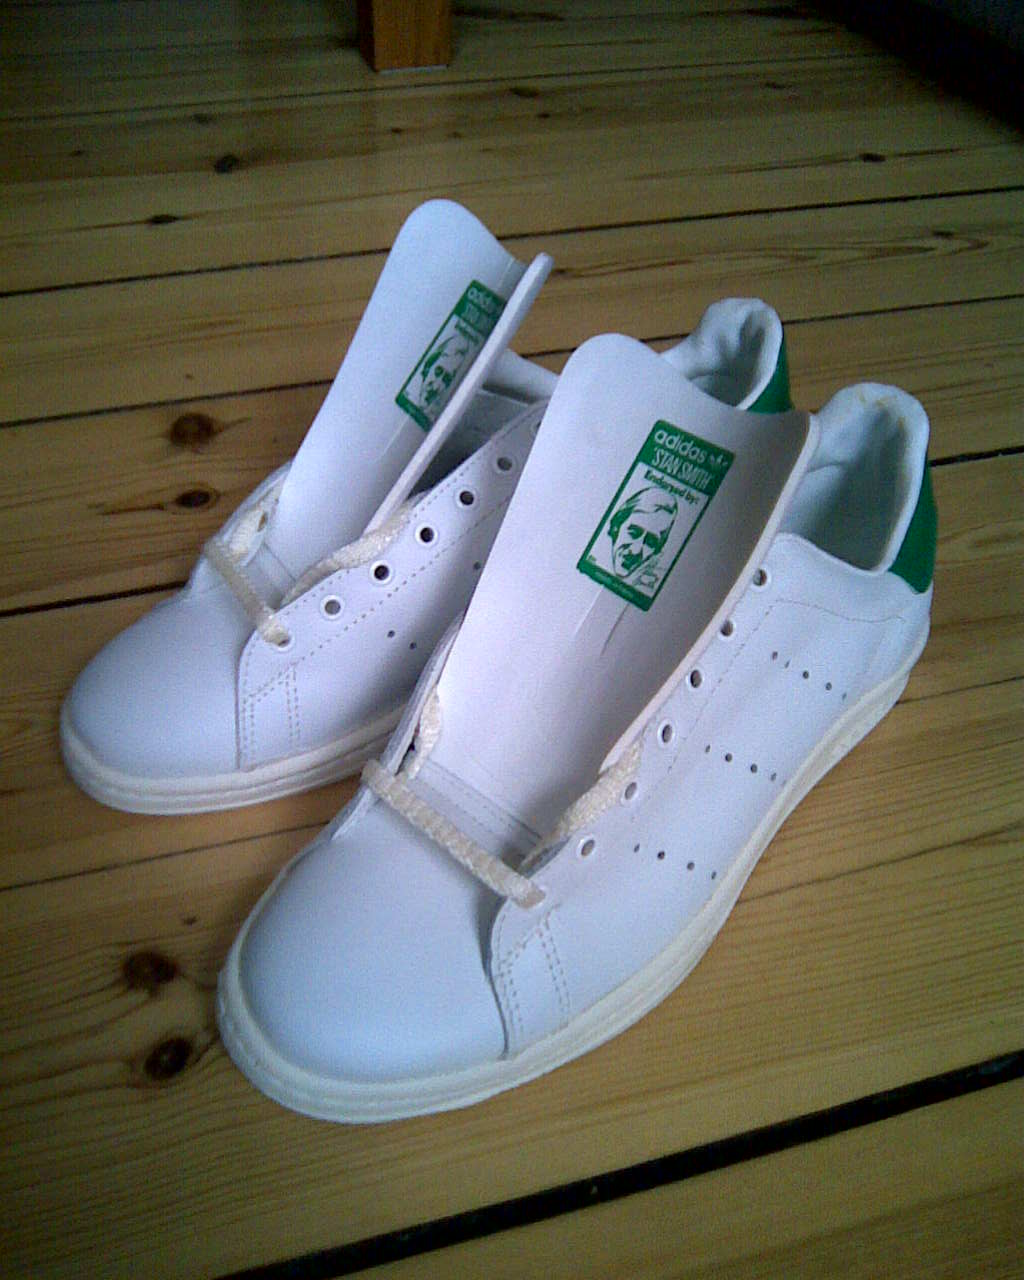 reputable site 434a4 51121 Adidas Stan Smith - Wikipedia